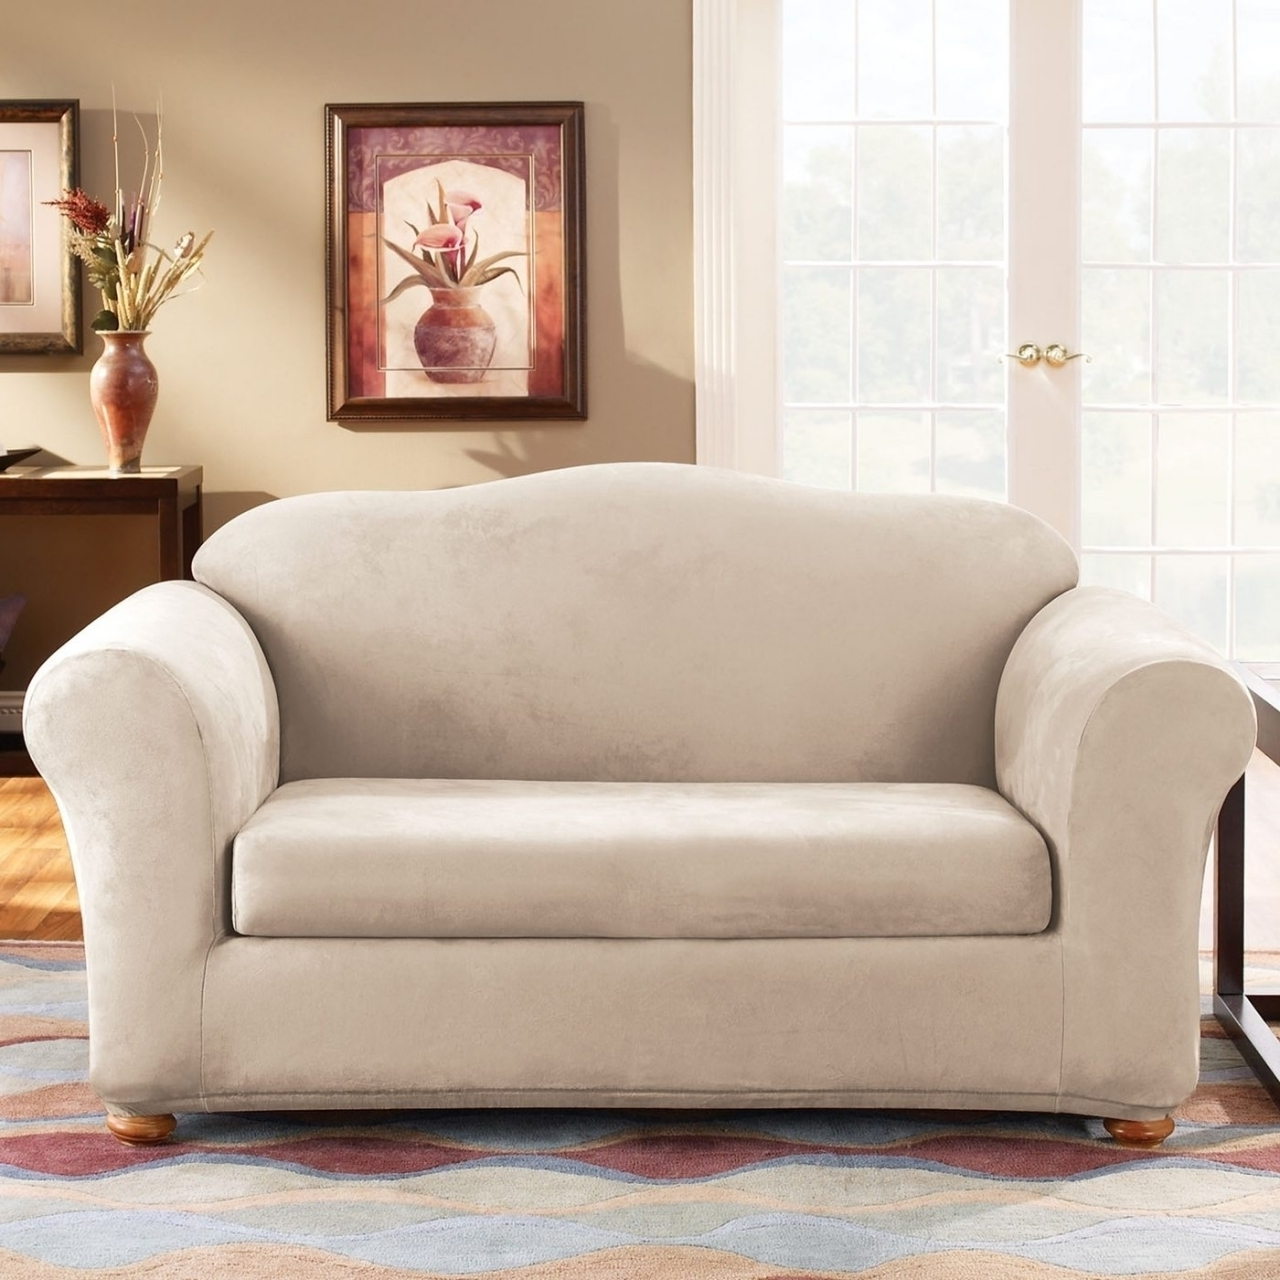 Kmart Sectional Sofa - Hotelsbacau in Most Recently Released Kmart Sectional Sofas